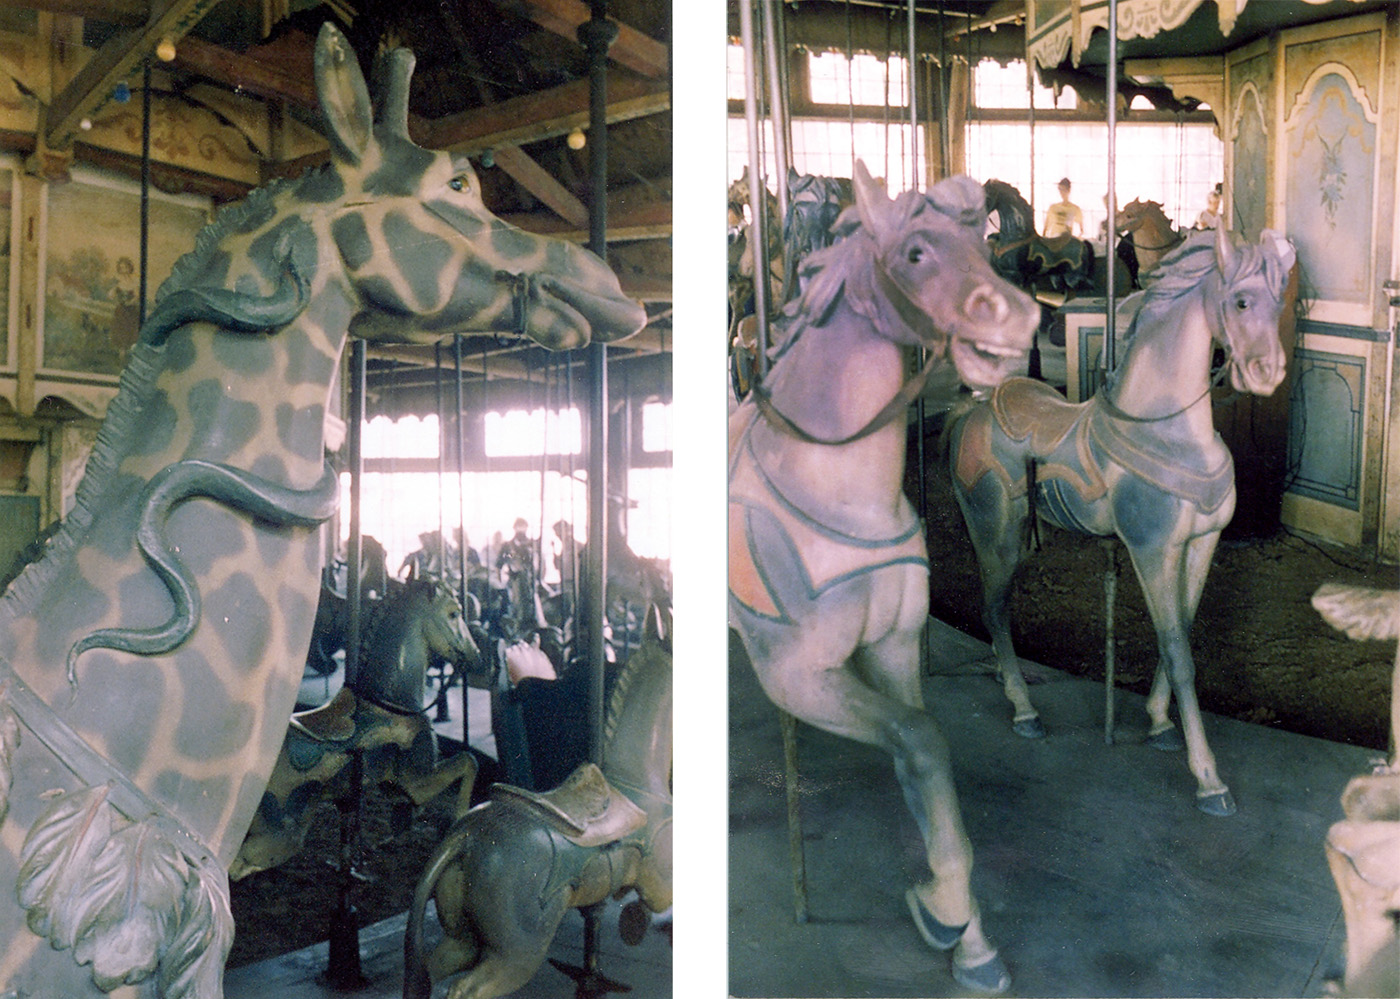 PTC-9-carousel-giraffe-horses-Pine-Grove-1980-B-Williams-photo-8